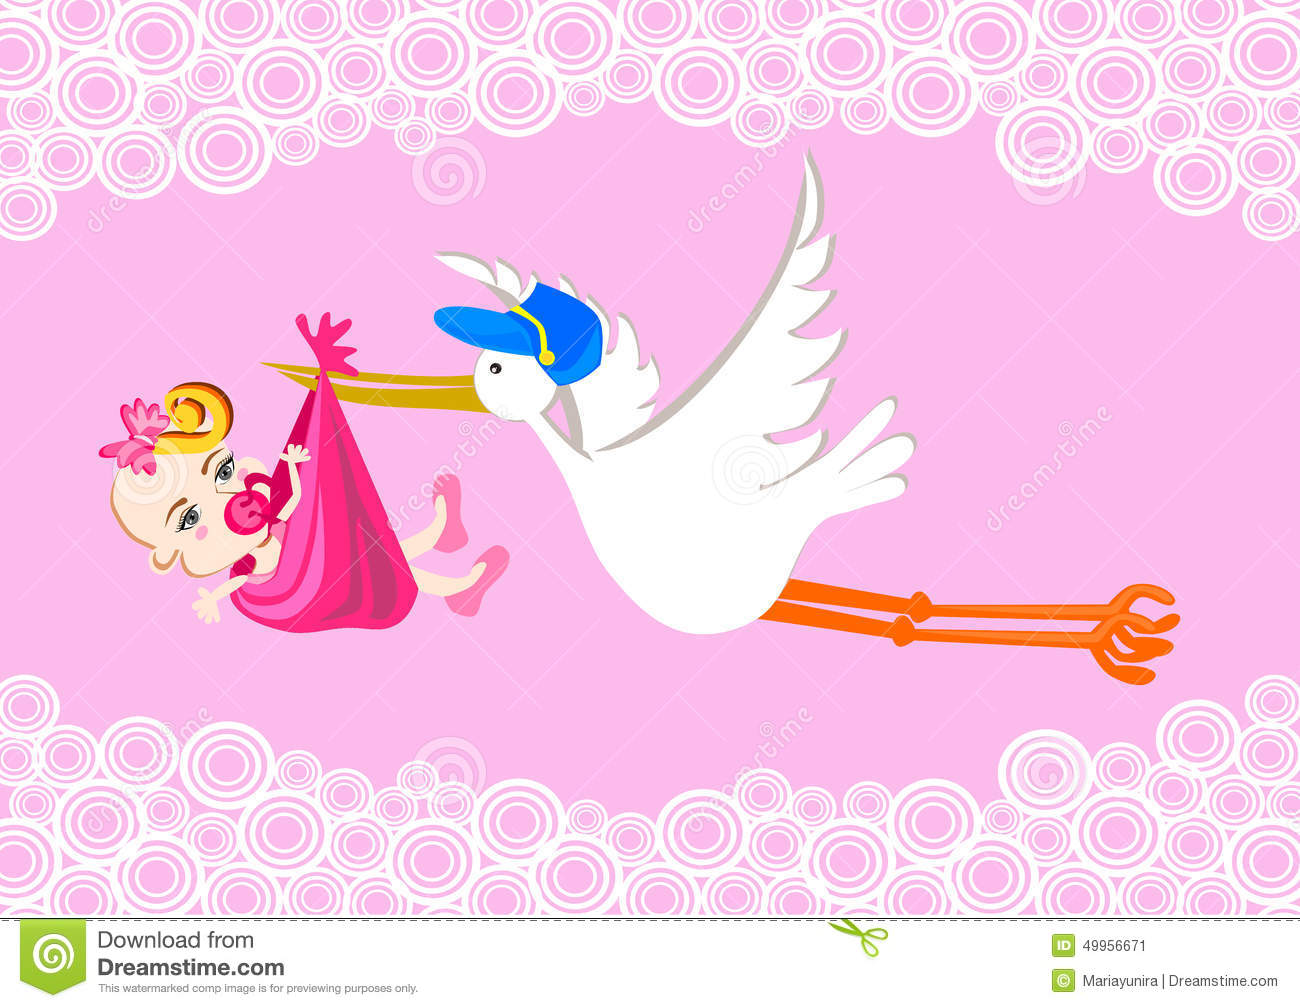 Carrying stock photos images. Baby girl stork clipart